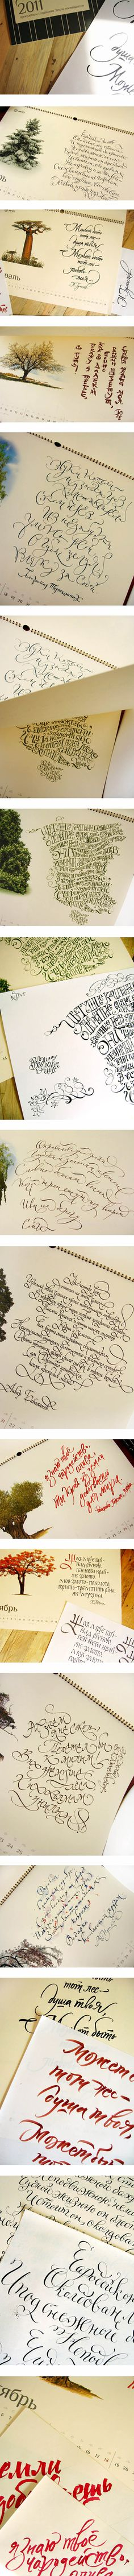 Calligraphy for the calendar. Marina Marjina Calendar is dedicated to the beauty of trees. Each month corresponds to one of these beautiful creatures. The image of each tree is expressed in poetic quotations. Calligraphy Letters, Typography Letters, Caligraphy, Graphic Design Typography, Learn Calligraphy, Beautiful Handwriting, Penmanship, Letter Art, Art Journals